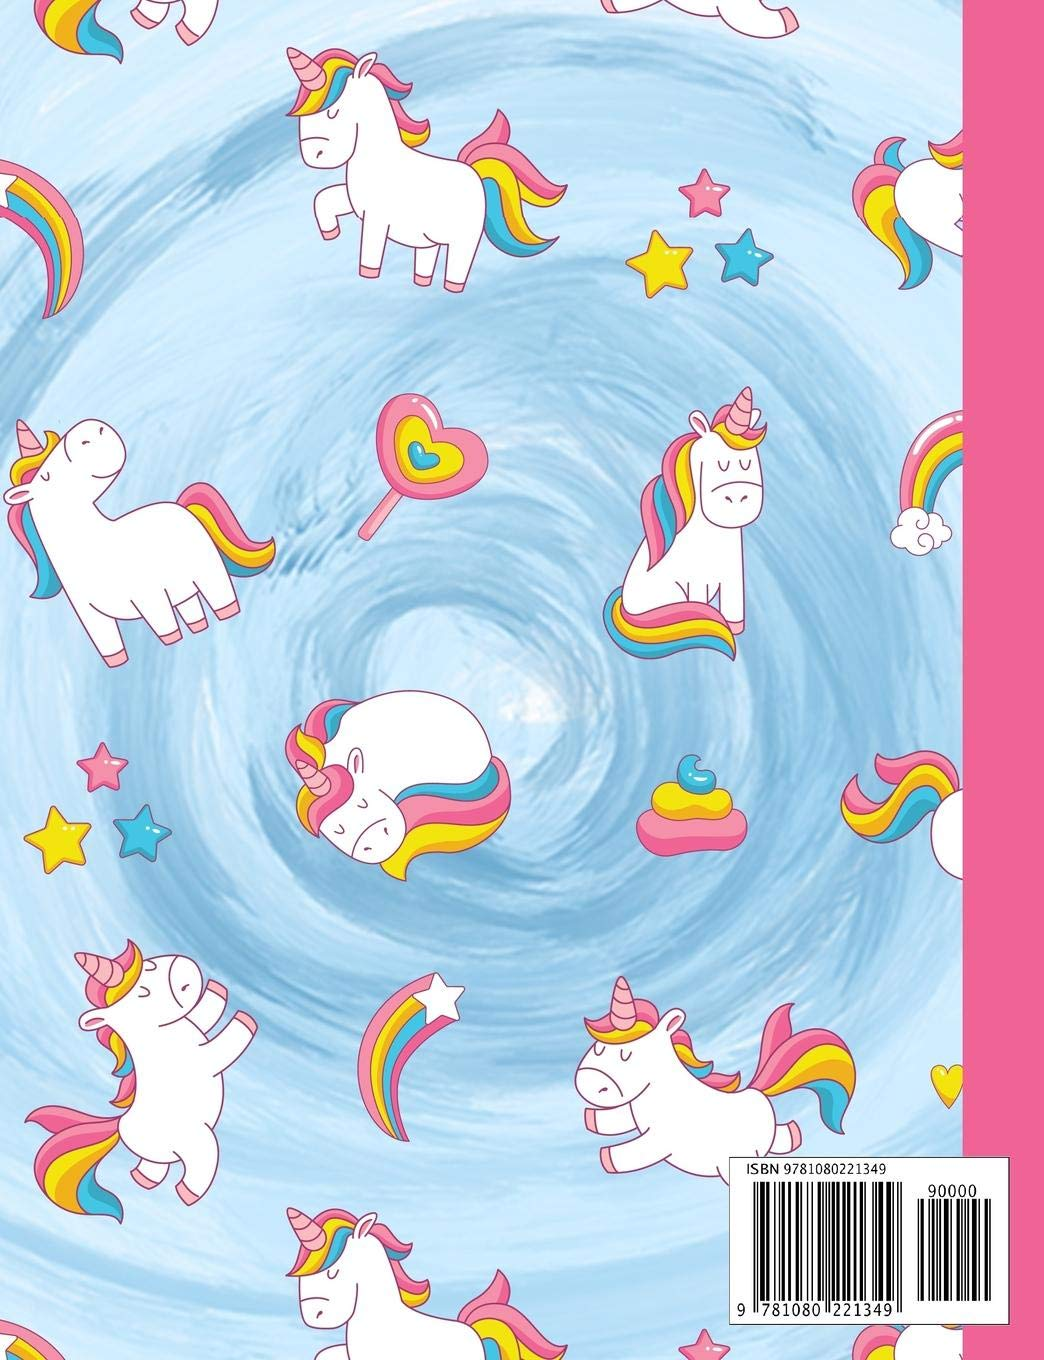 Composition Book Magic Rainbow Unicornado Unicorn Tornado